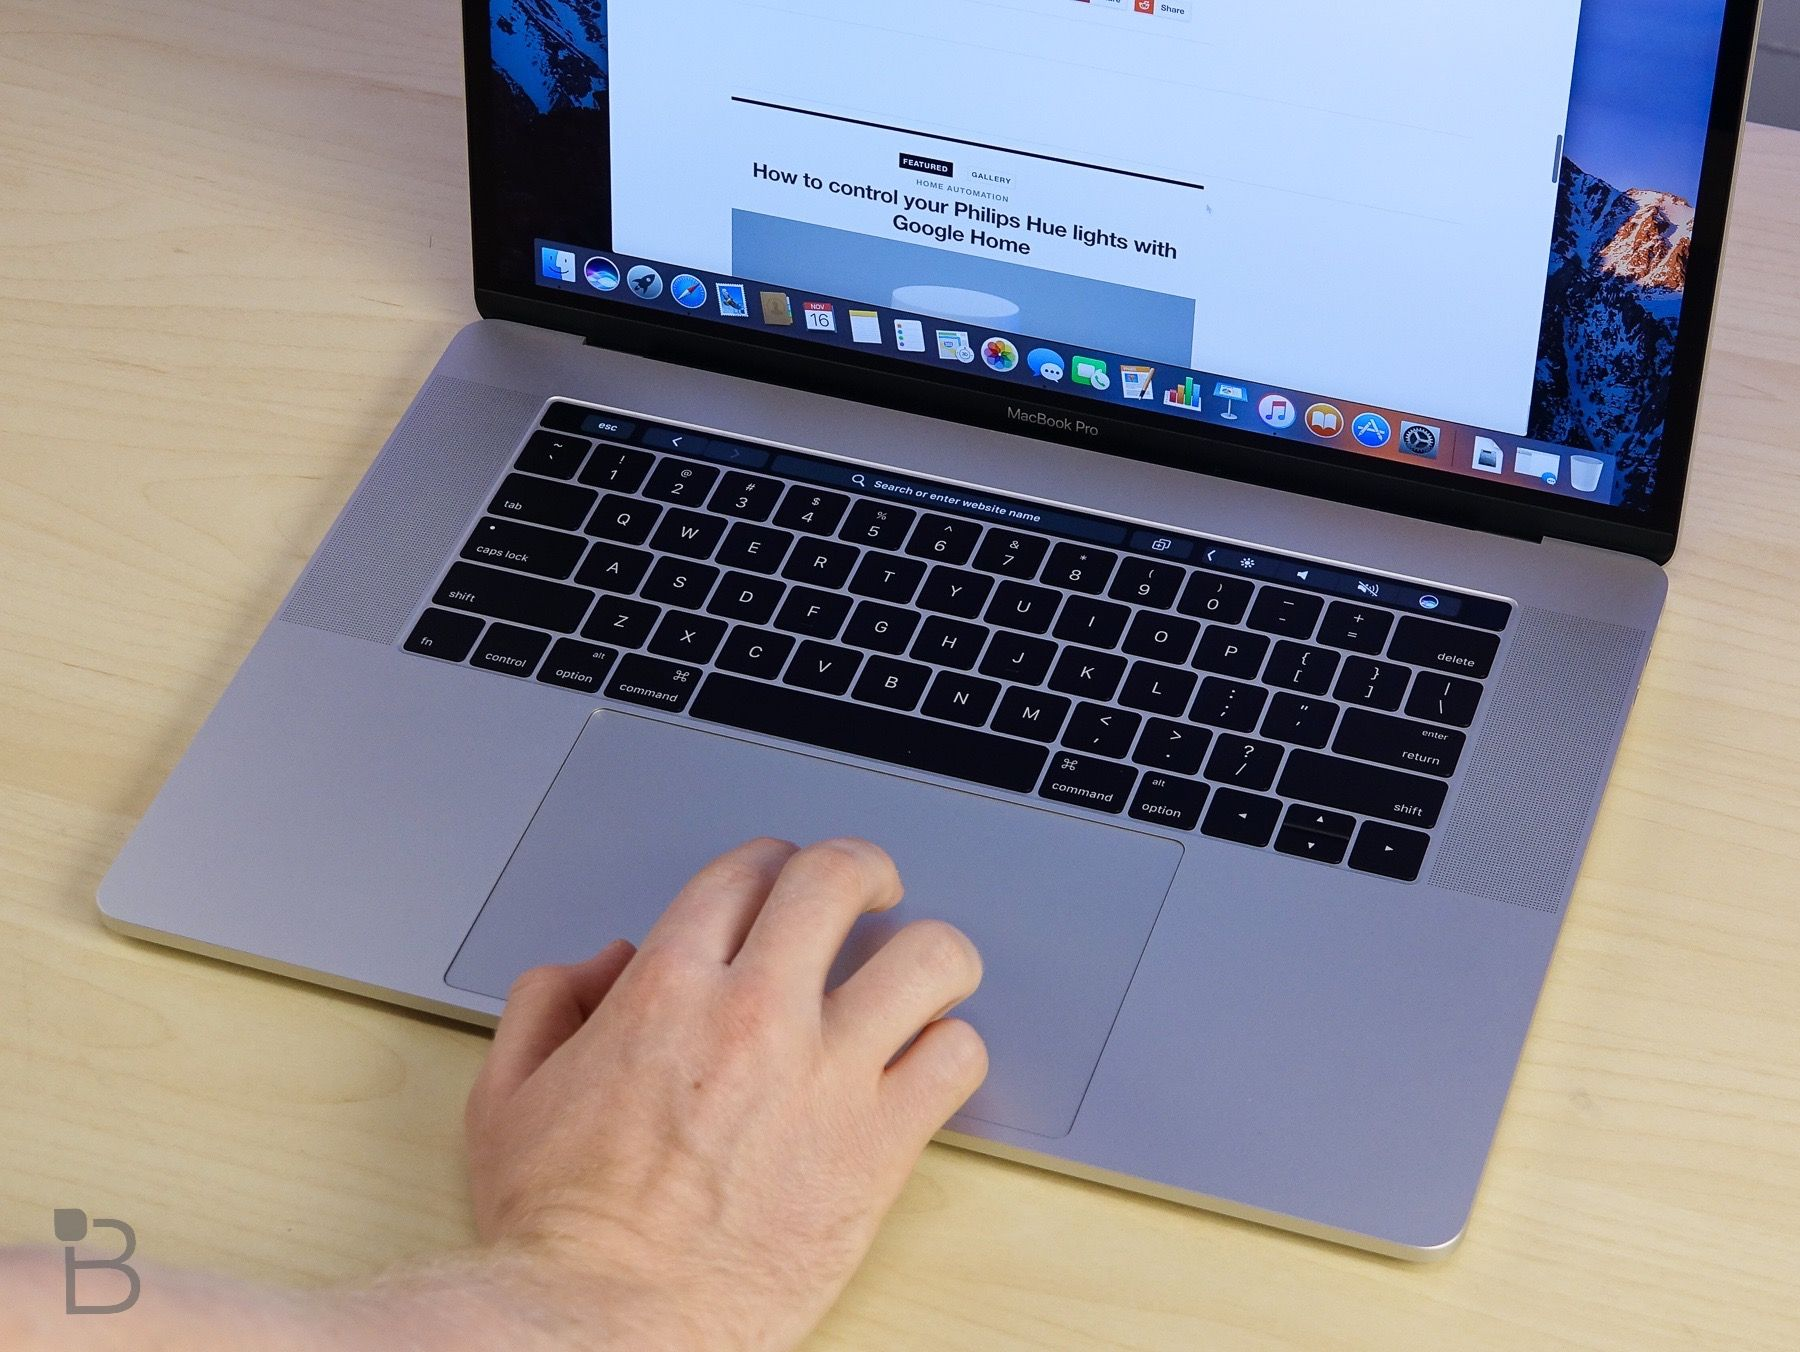 When Apple Launched Its Ultimate Round Of Macbook Professionals The Standout Feature Was The Touch Bar Macbook Pro Touch Bar Macbook Pro Battery Macbook Pro